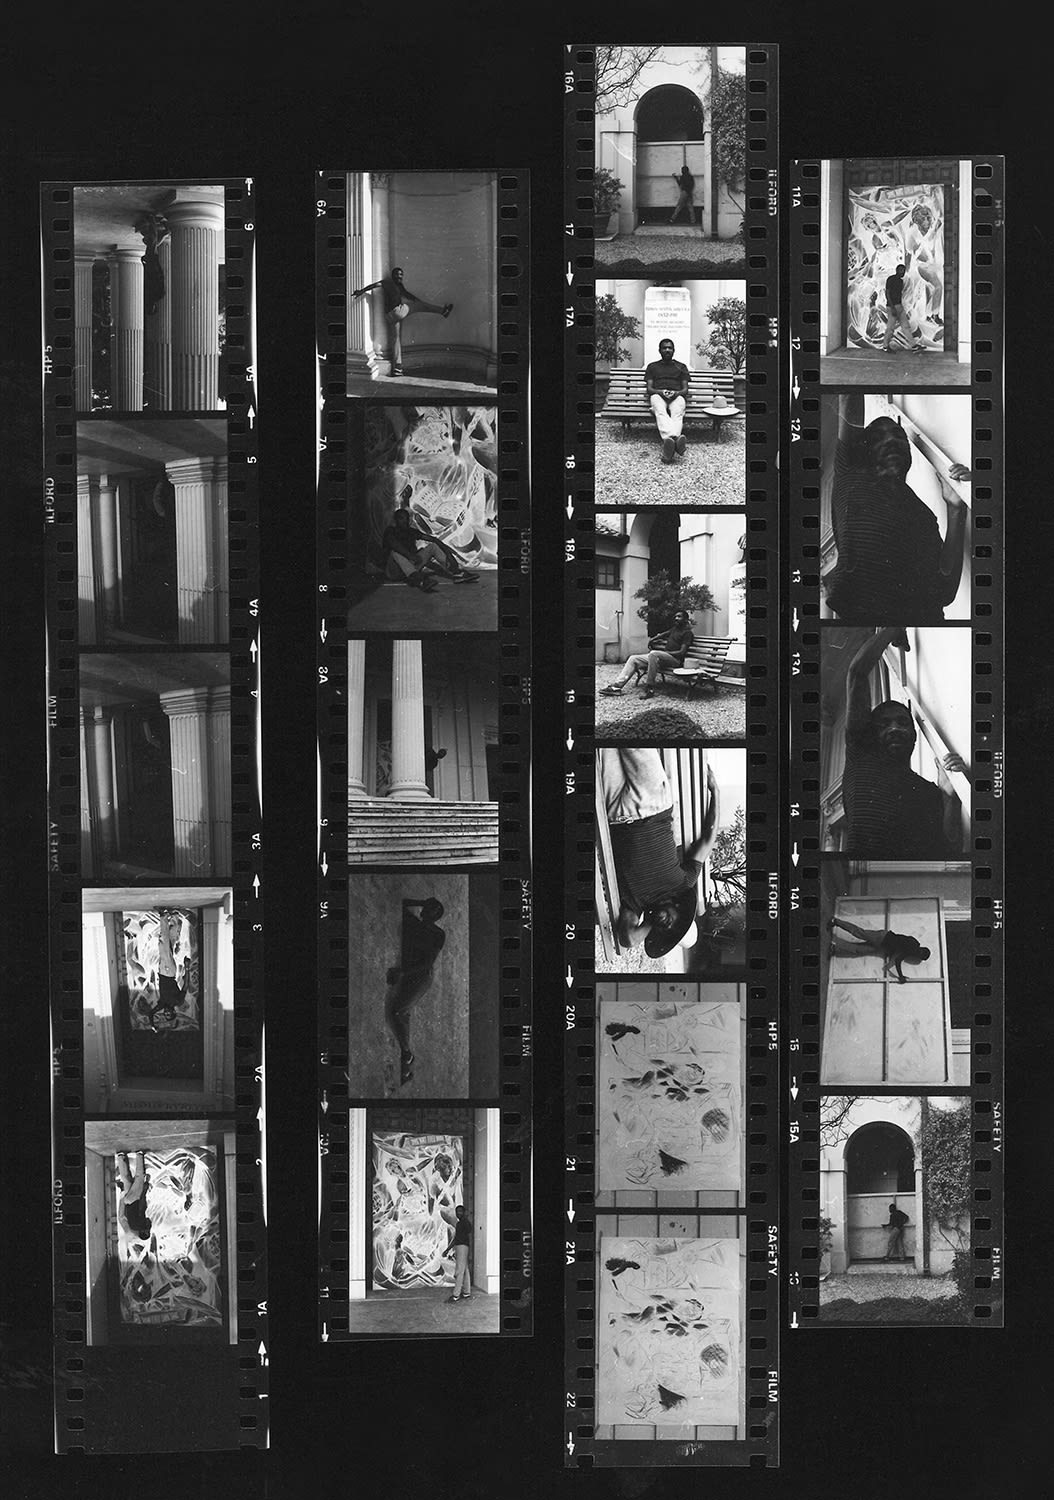 <p><span>Contact prints from Denzil Forrester's time in Rome (1984).</span></p>